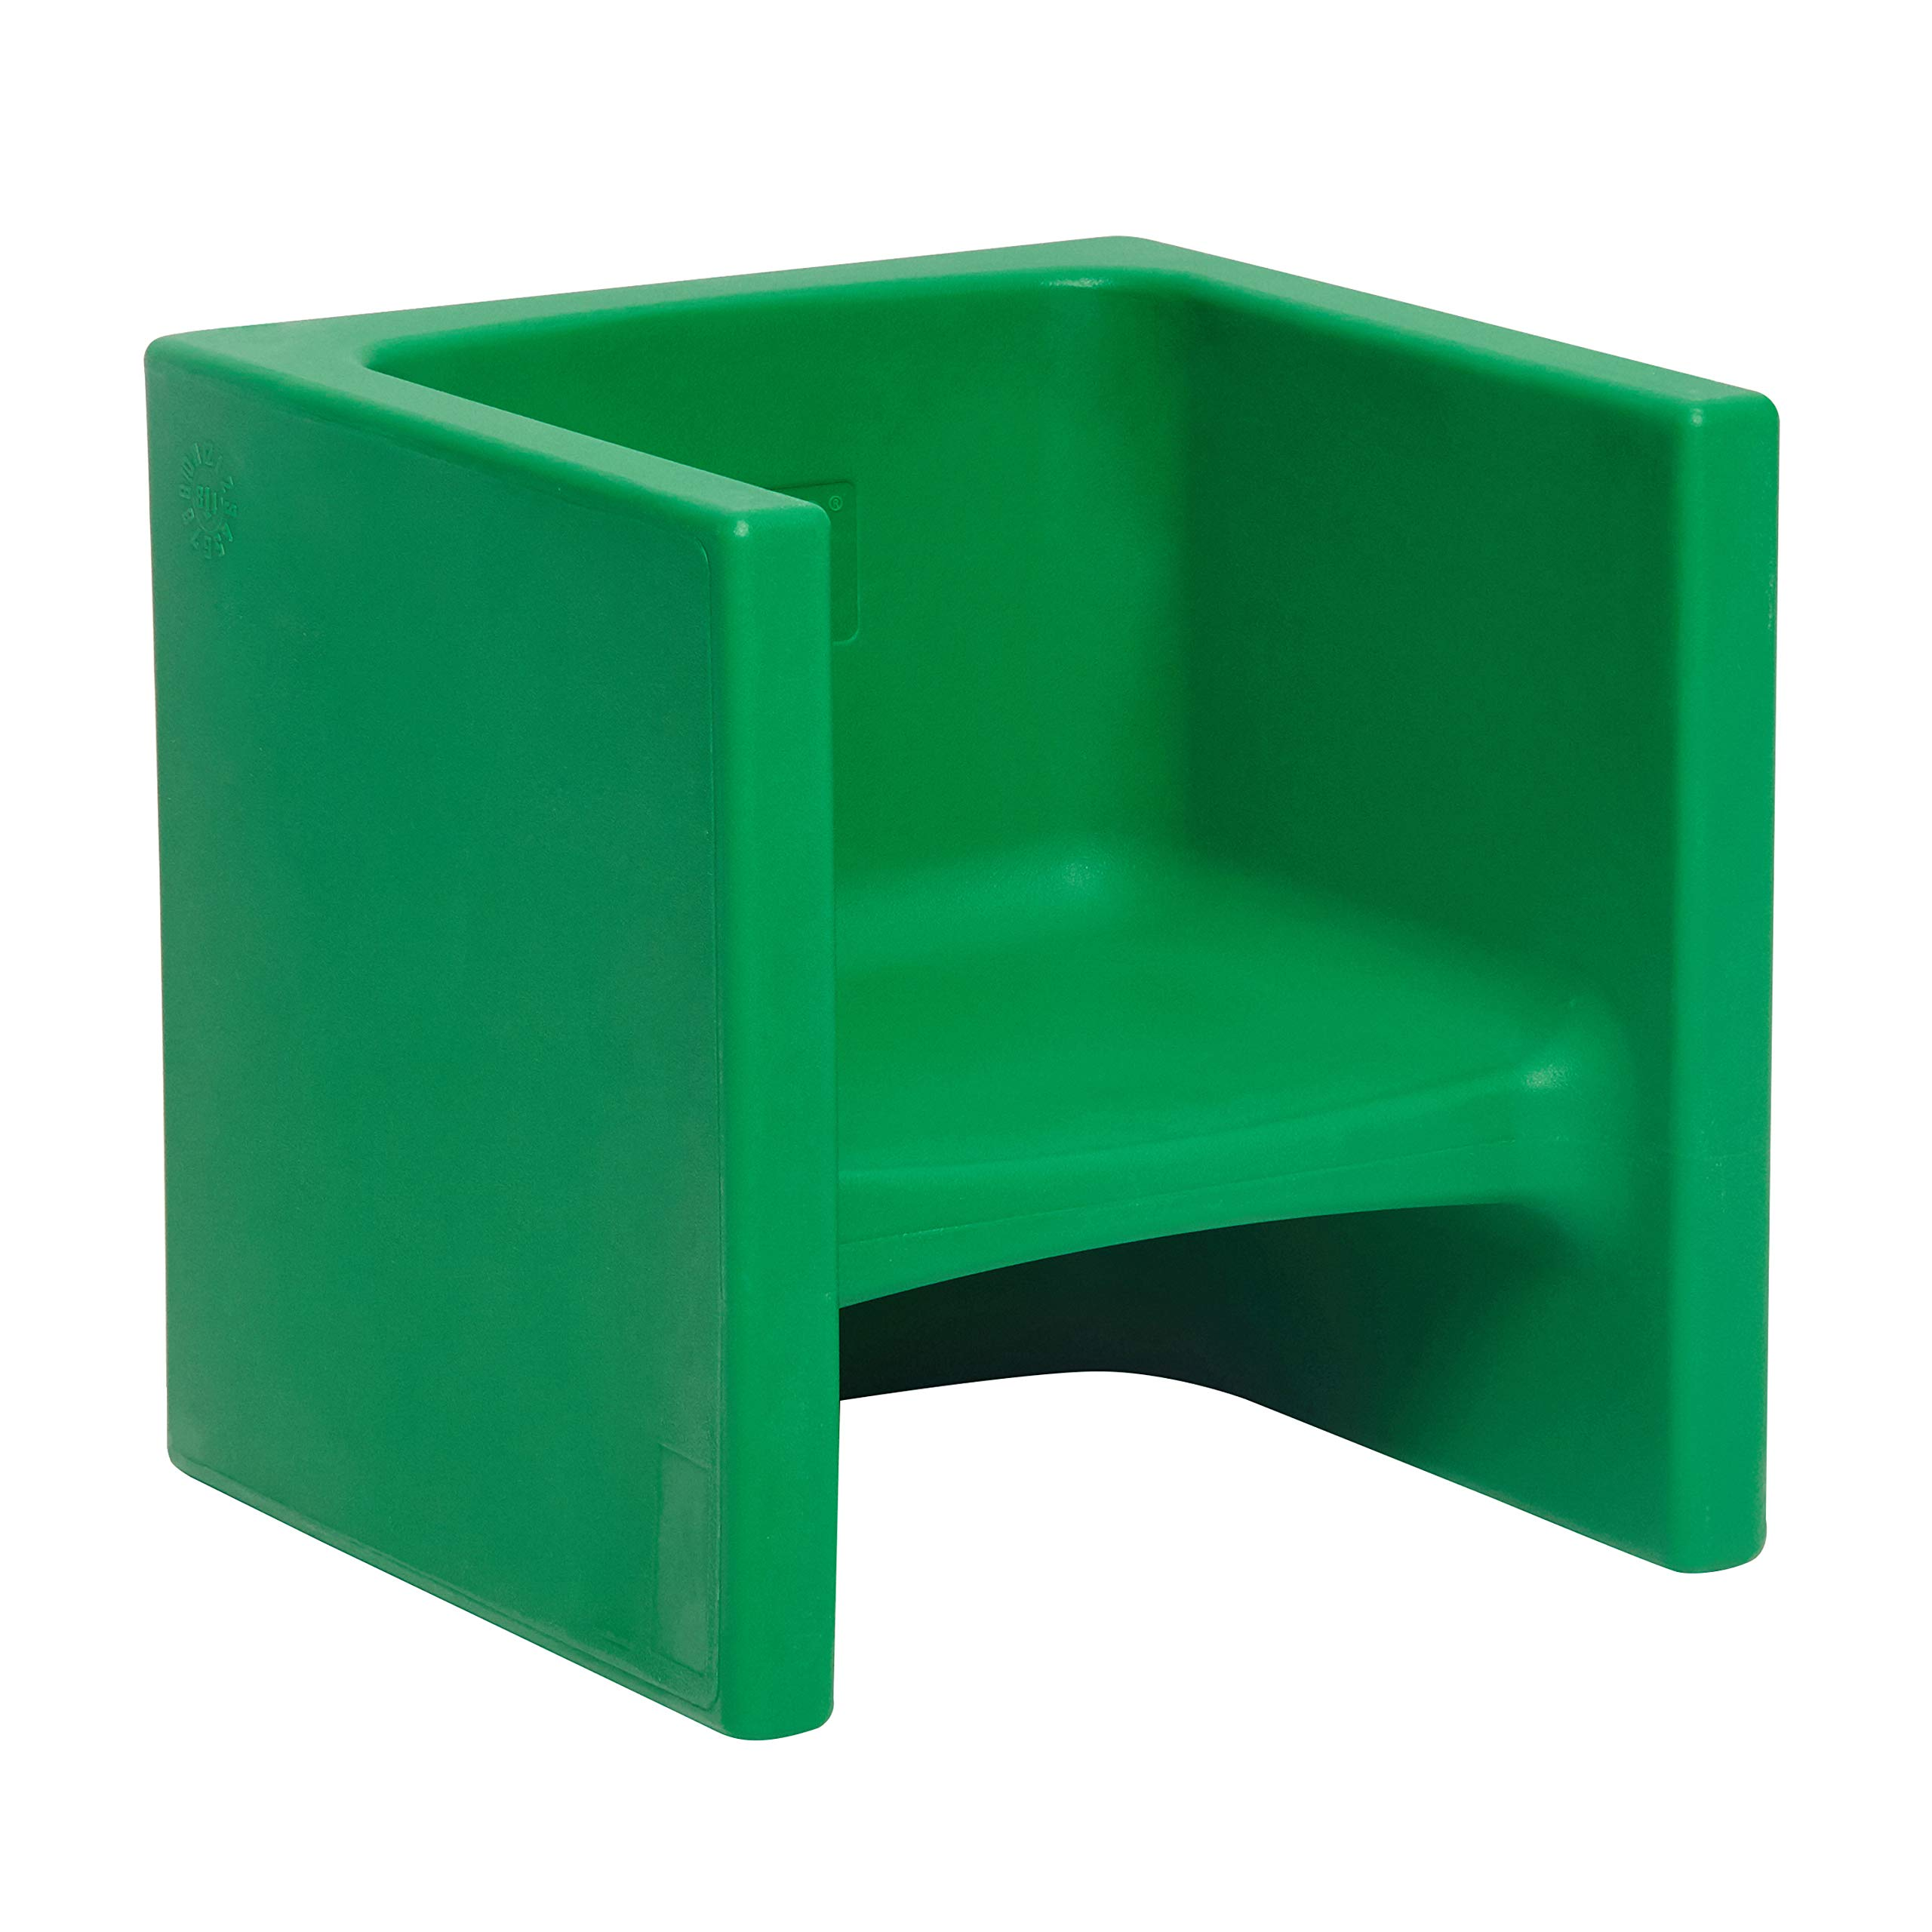 ECR4Kids Tri-Me 3-in-1 Cube Chair, Portable Indoor/Outdoor Play Seat or Table for Kids and Toddlers, Green by ECR4Kids